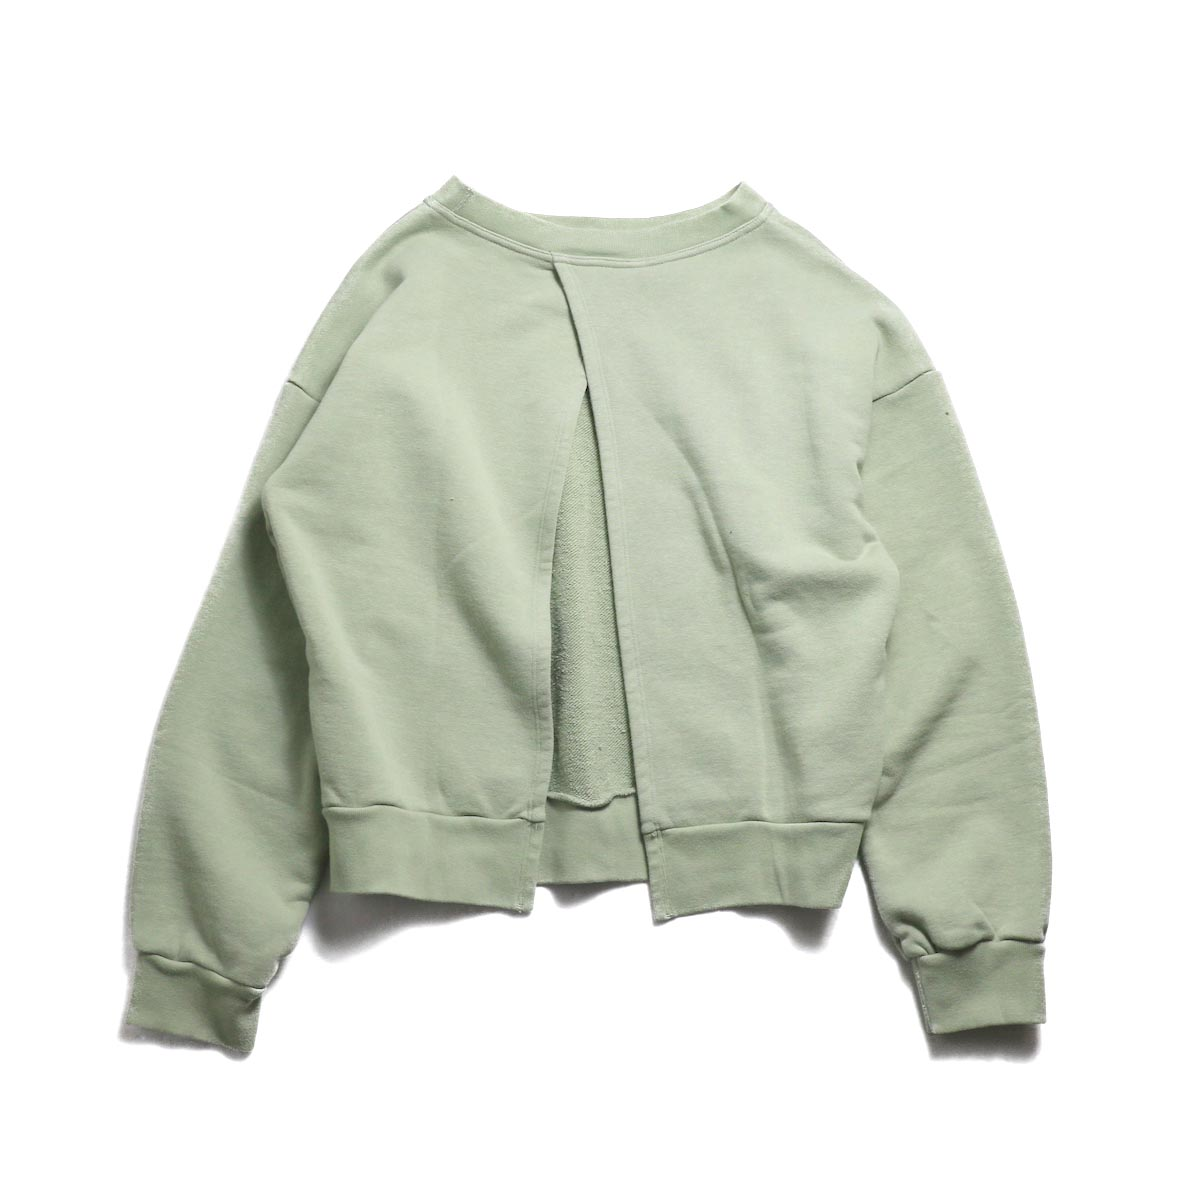 UNUSED (Ladie's) / US1530 Crew Neck Sweat Shirt -SAGE GREEN